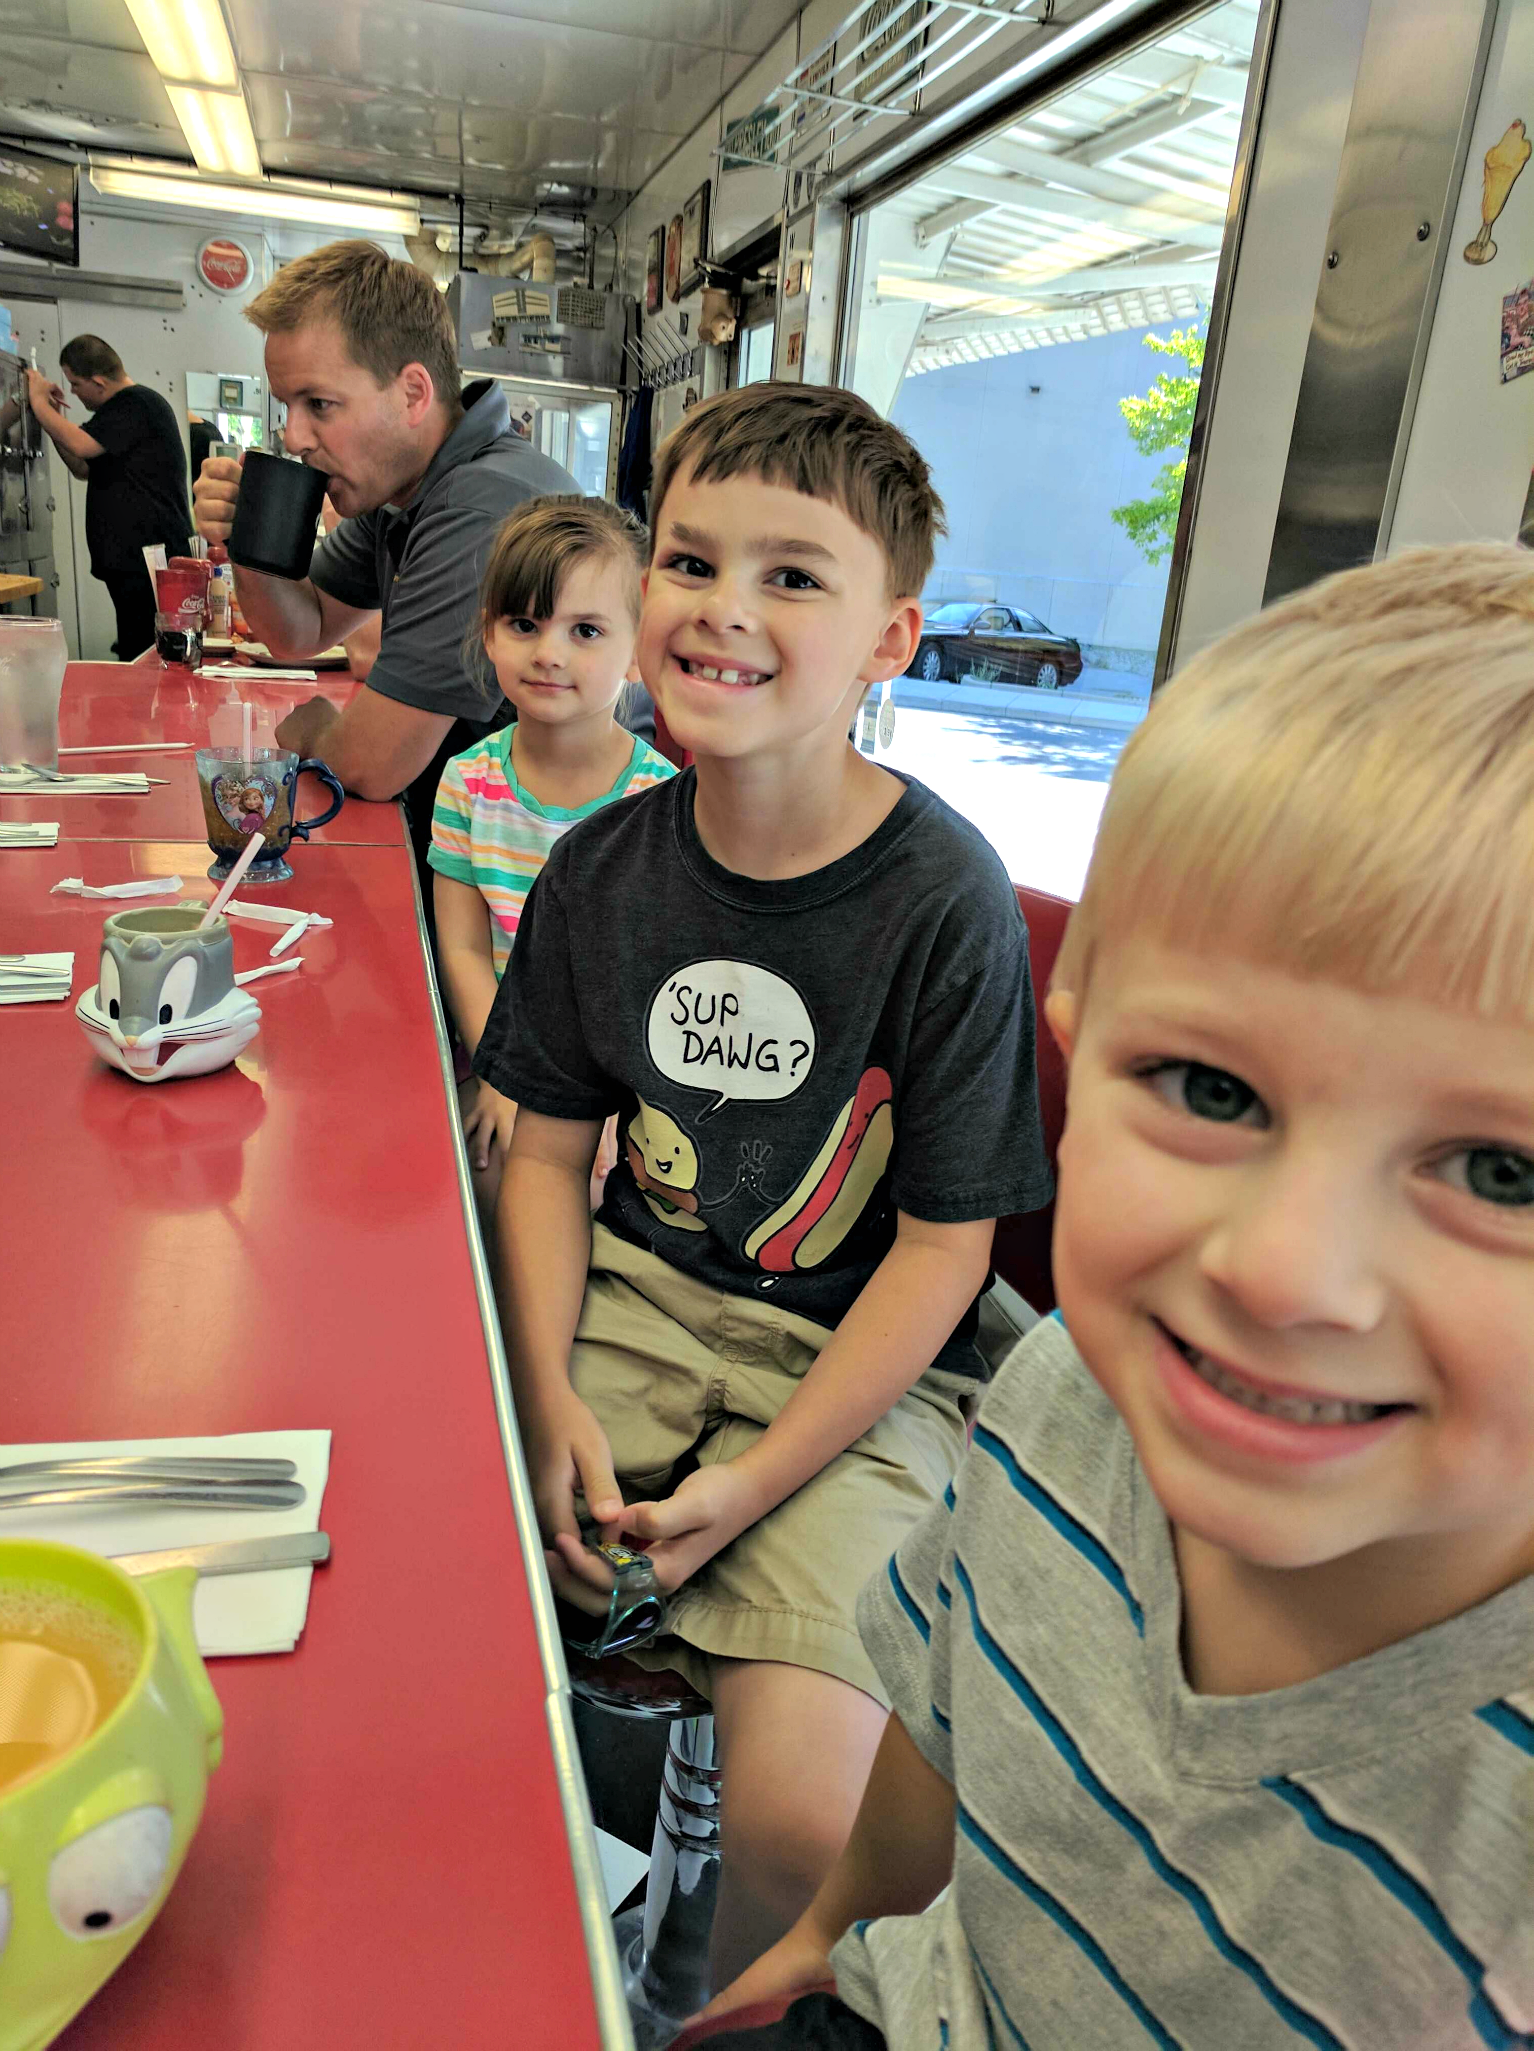 48 Hours in Fort Wayne - Cindy's Diner